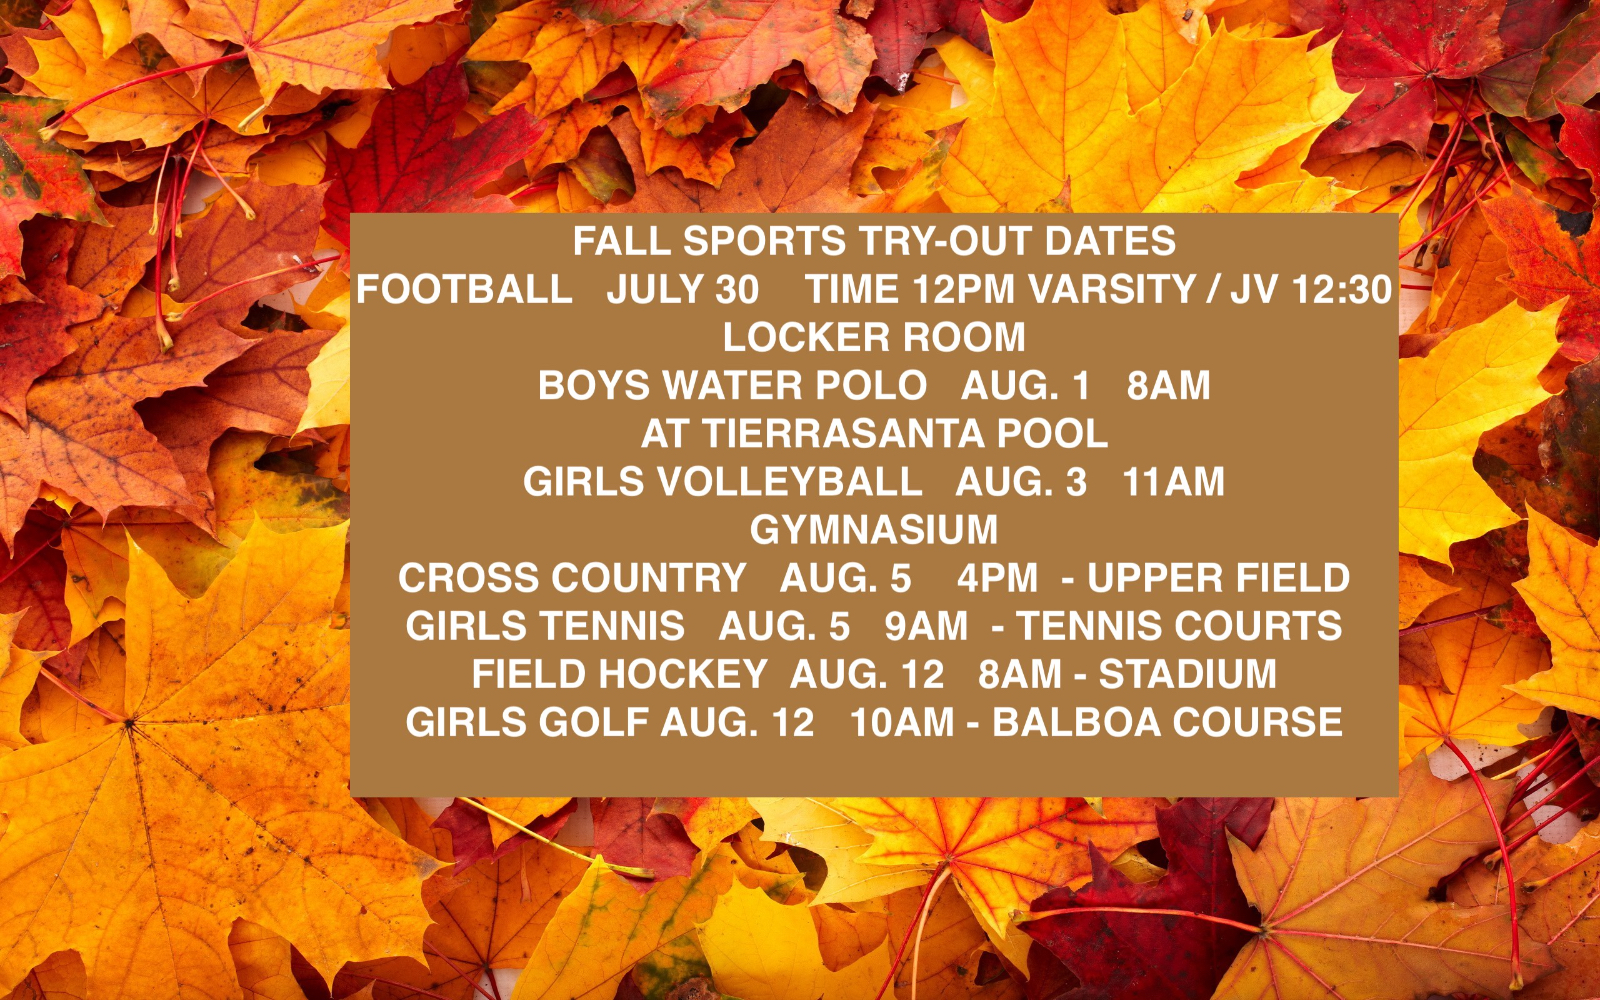 FALL SPORTS TRYOUT DATES